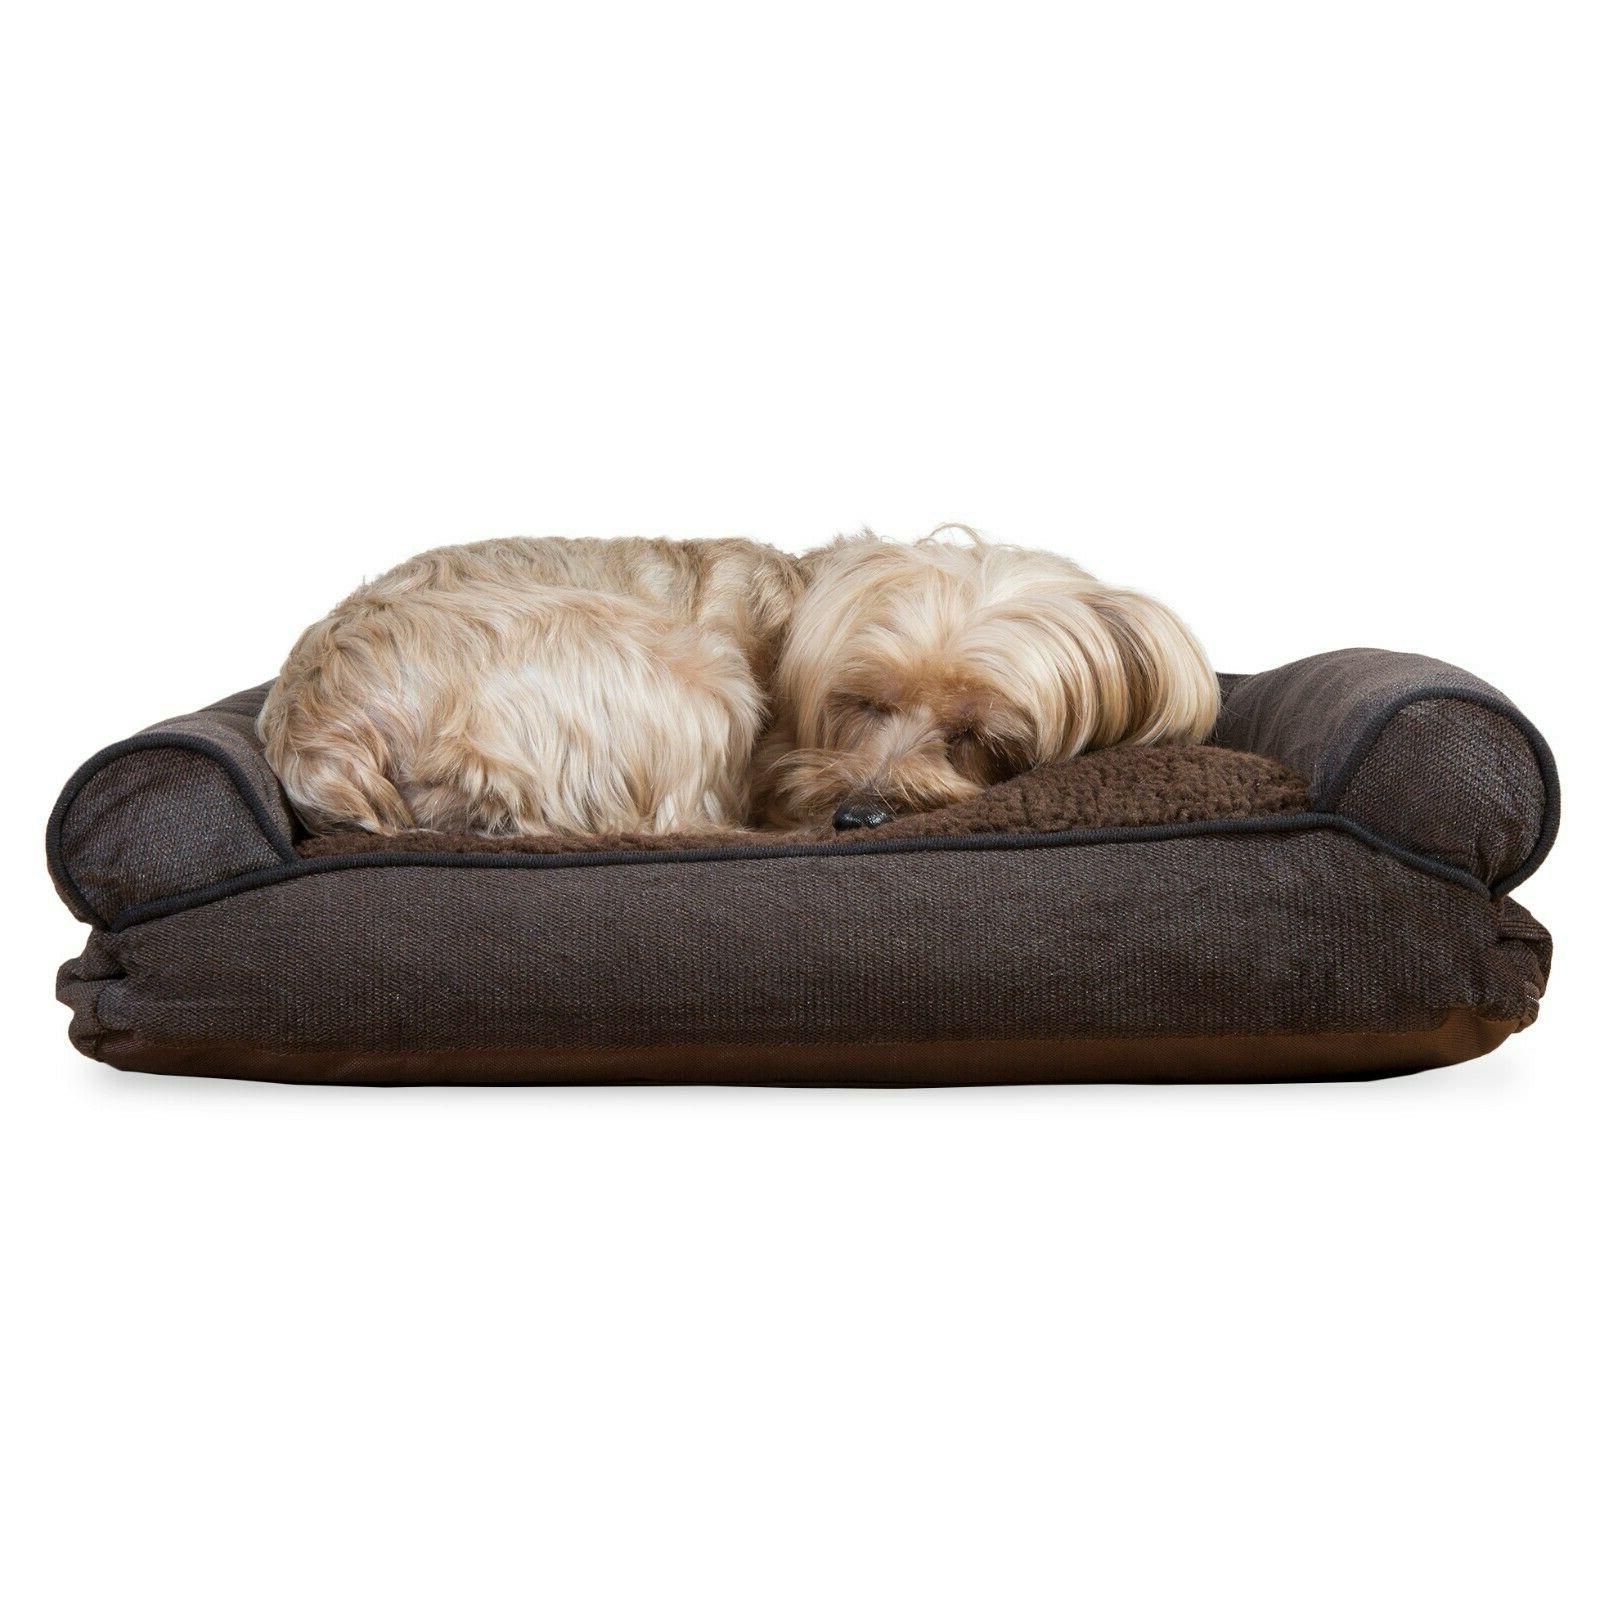 FurHaven & Pillow Sofa